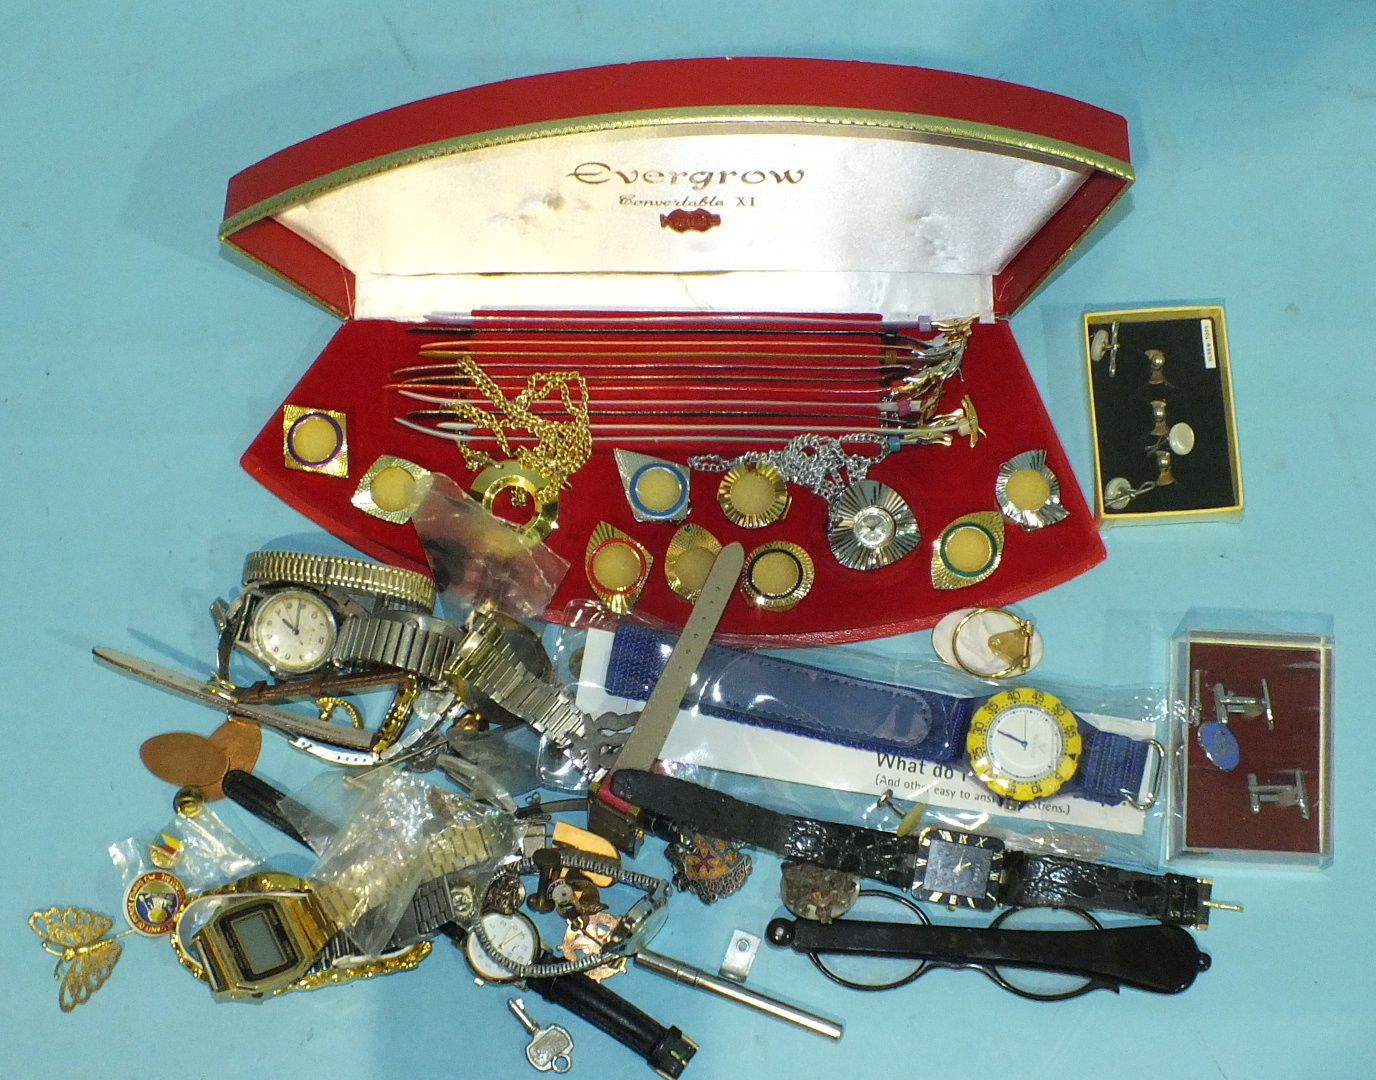 Lot 240 - An Evergrow Convertable XI set of watch straps, bezels and movement and other watches, badges, etc.